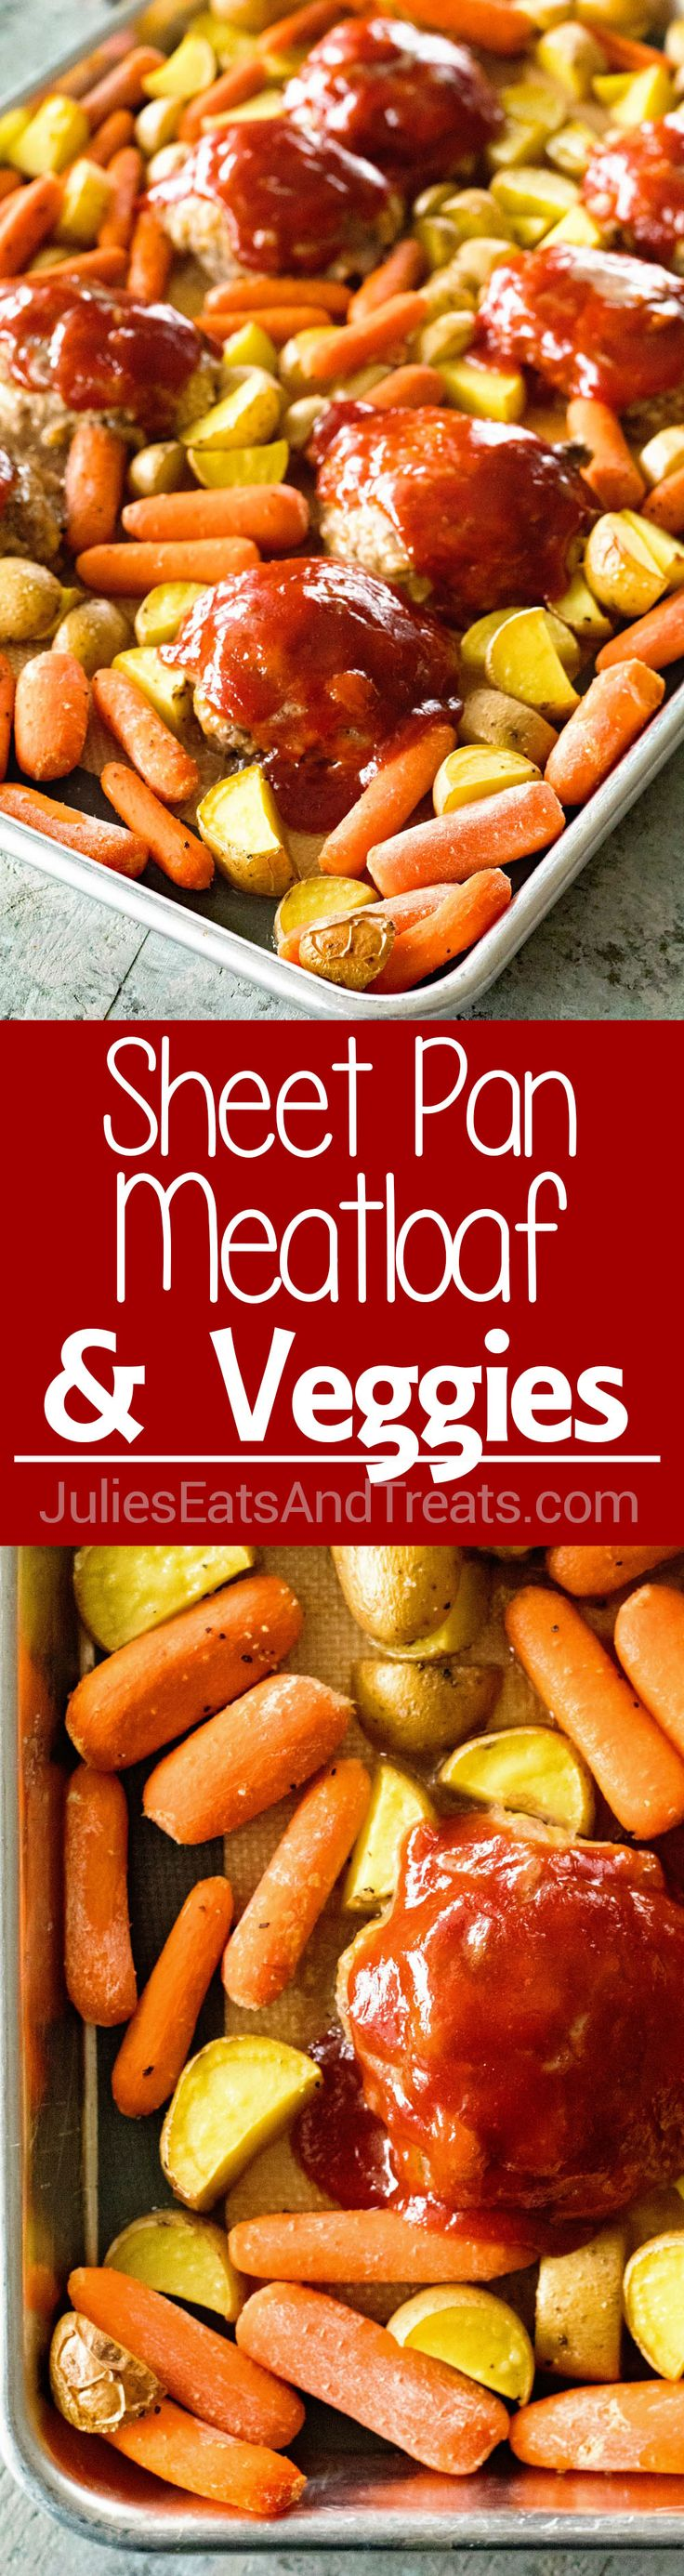 Sheet Pan Mini Meatloaf and Veggies ~ An Easy Sheet Pan Dinner! Homemade Mini Meatloaves, Carrots and Potatoes all Made on One Sheet Pan for Busy Nights! via @julieseats